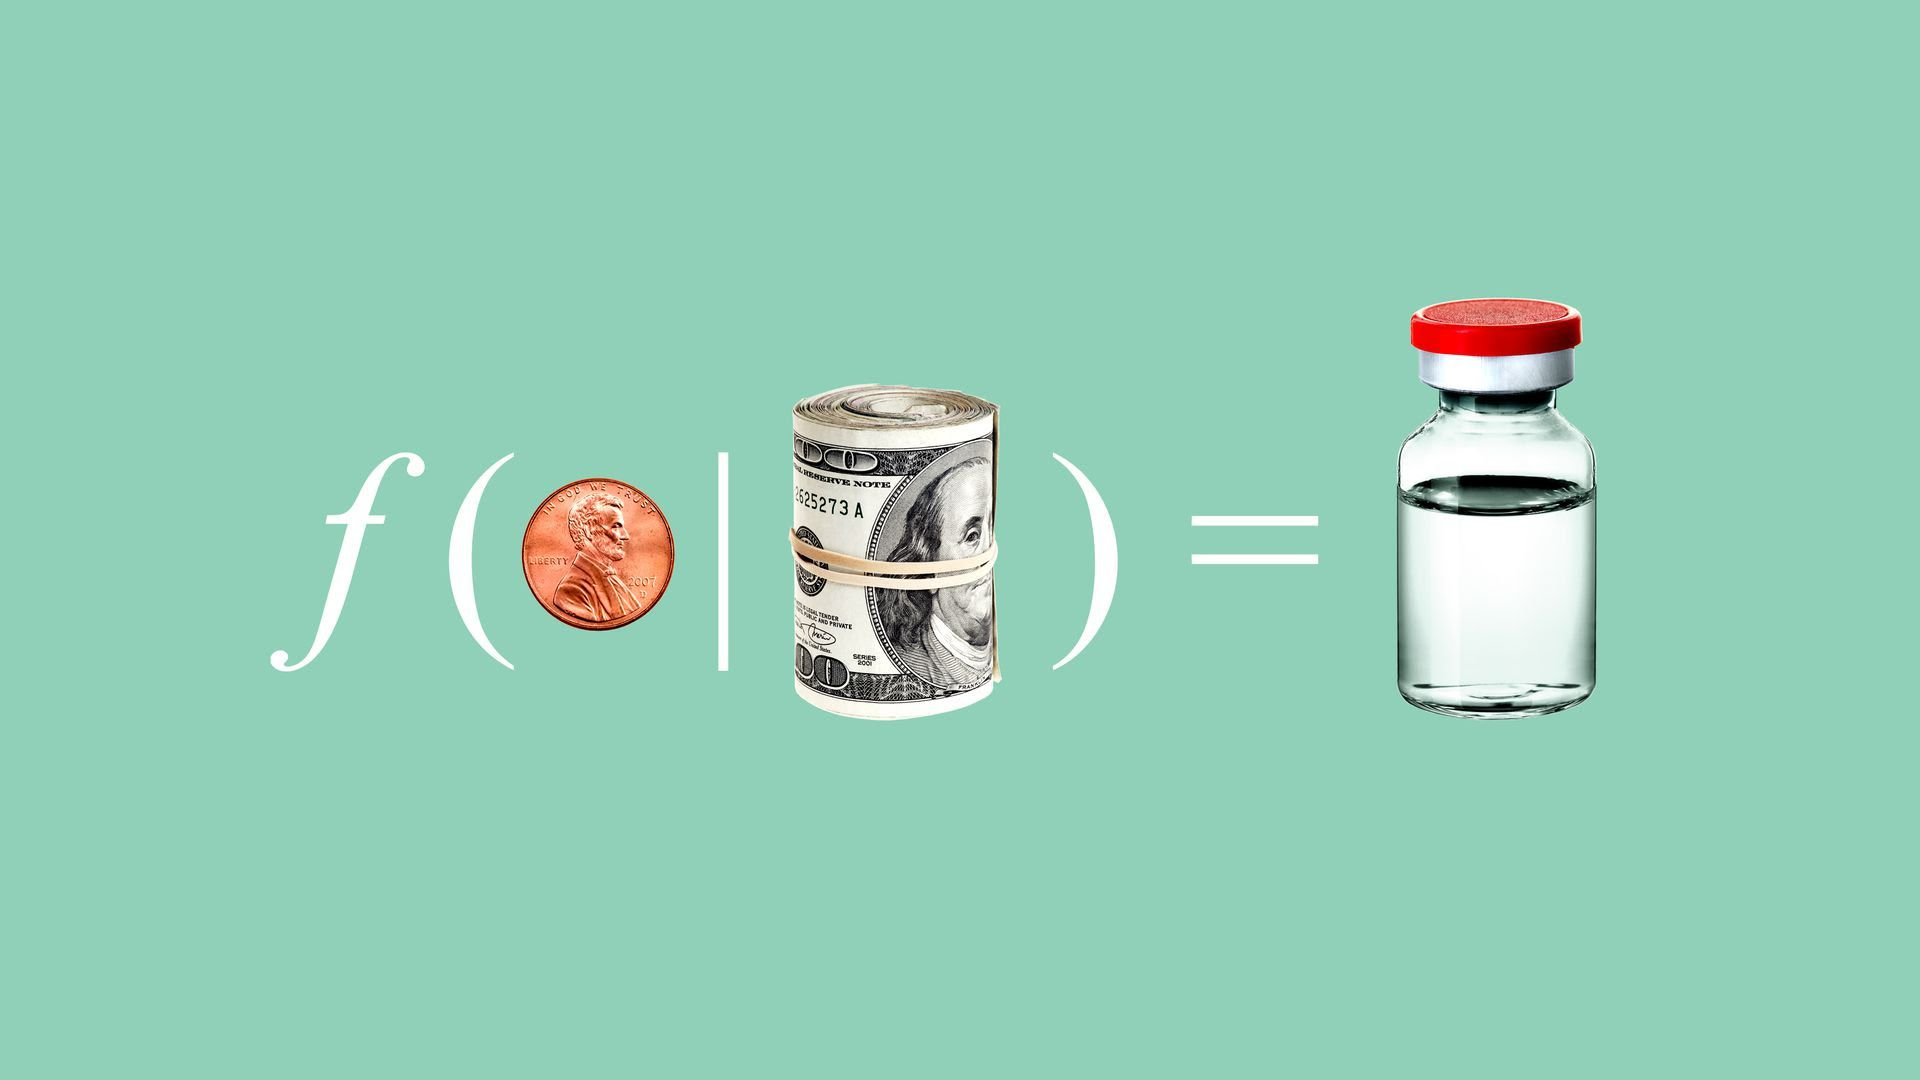 Illustration of a math equation with money leading to a vaccination bottle